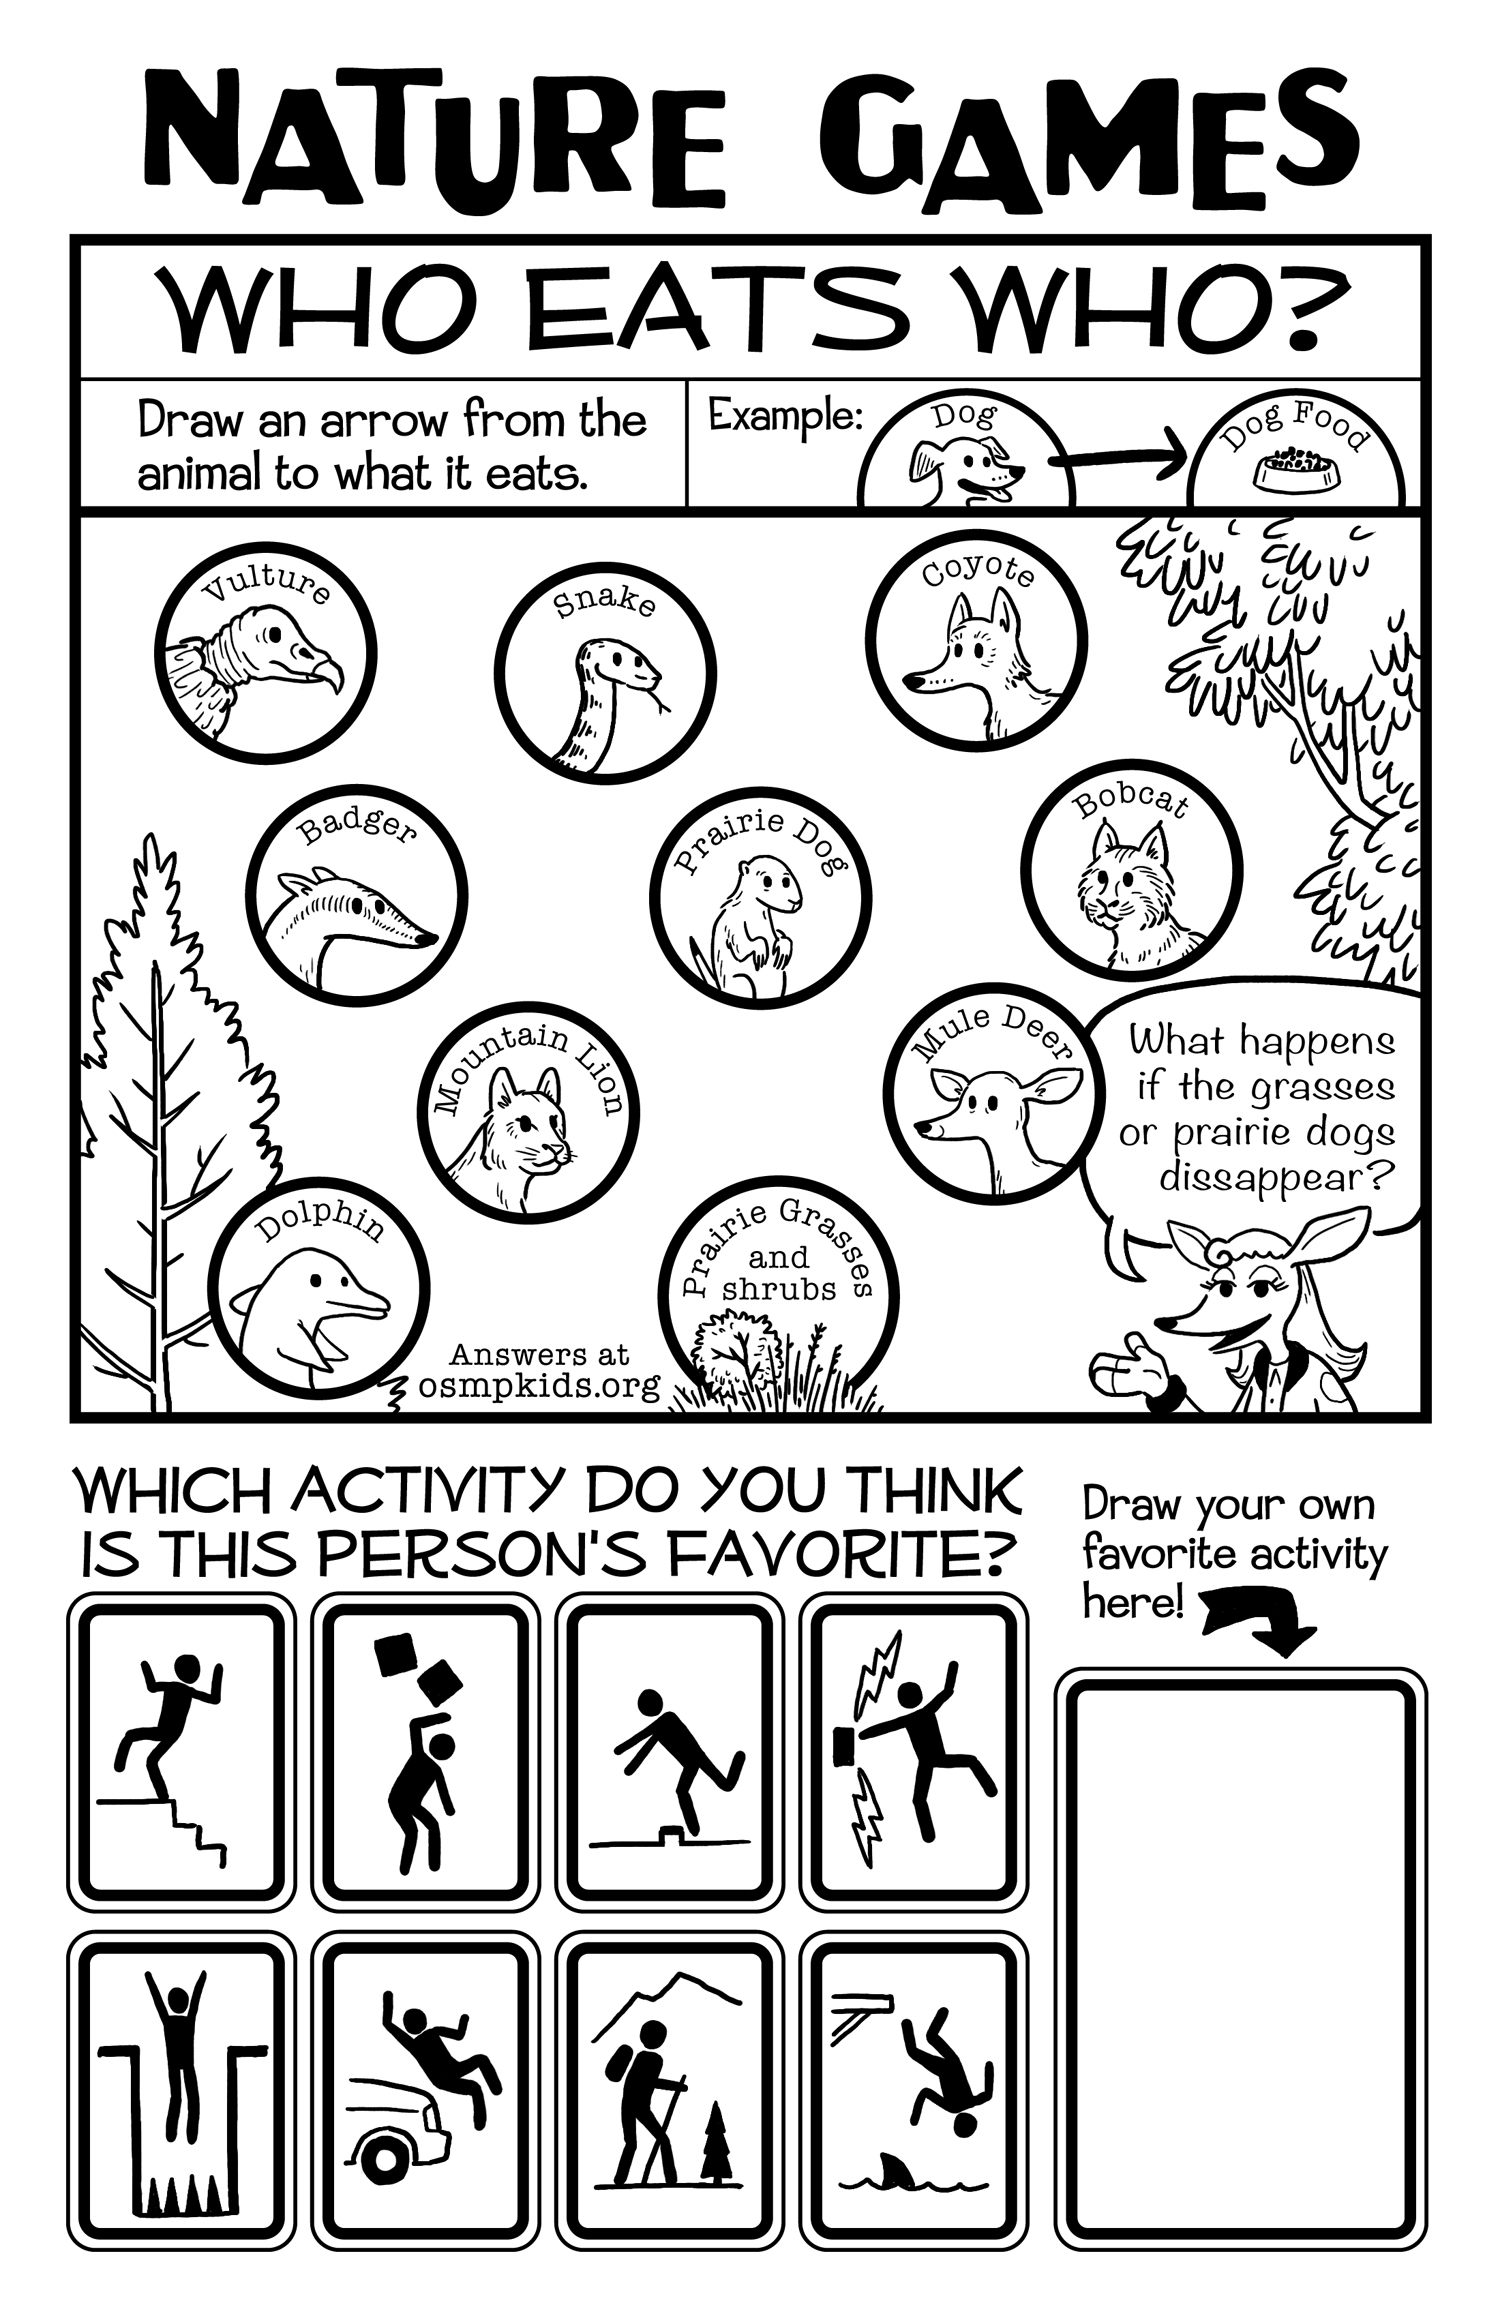 Kids_Nature_Comic_08.jpg